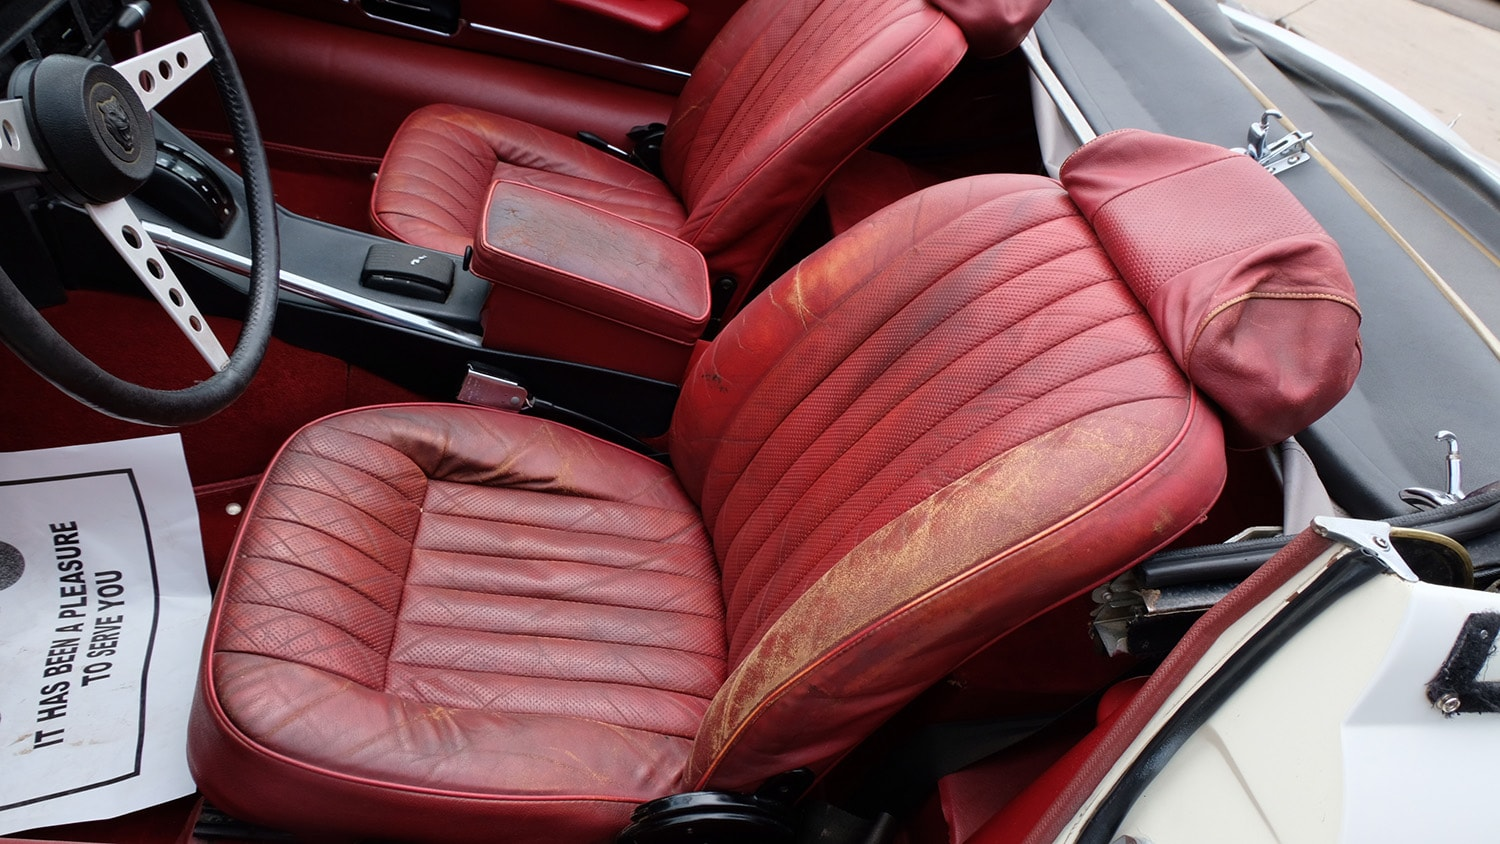 1972 Jaguar XKE Convertible Interior.JPG